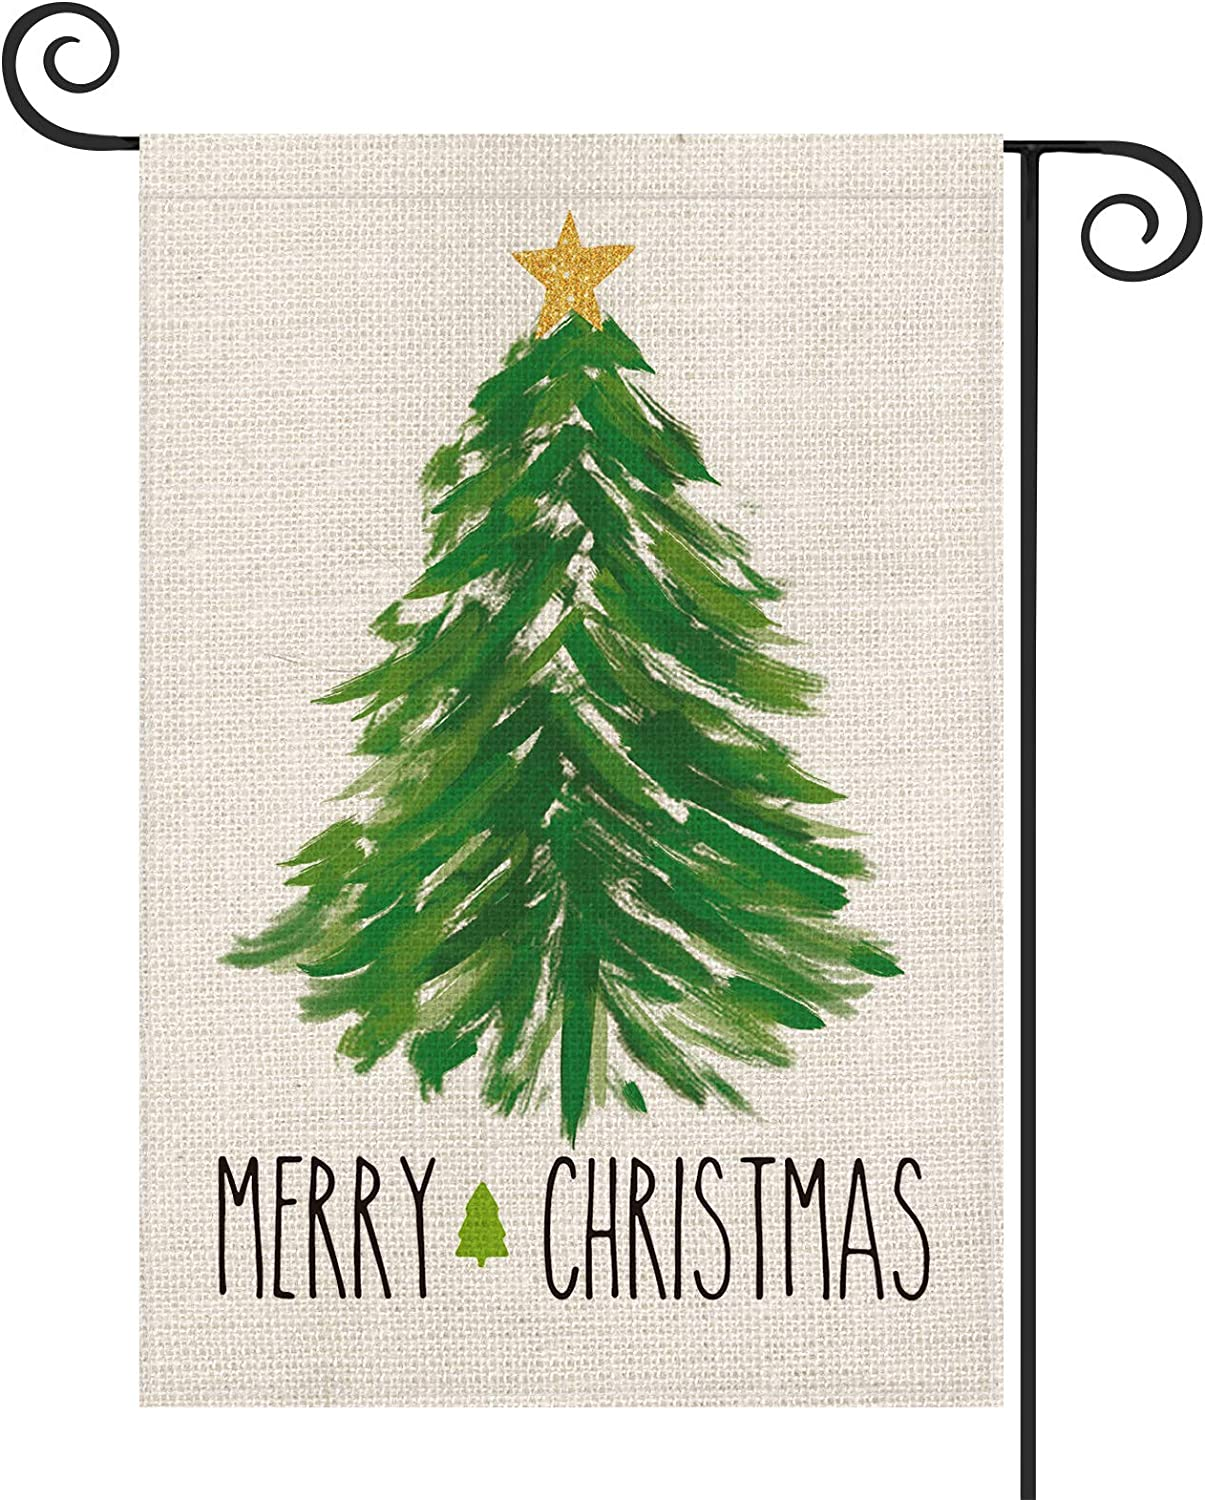 AVOIN Merry Christmas Watercolor Christmas Tree Garden Flag Vertical Double Sized, Winter Holiday Star Party Yard Outdoor Decoration 12.5 x 18 Inch